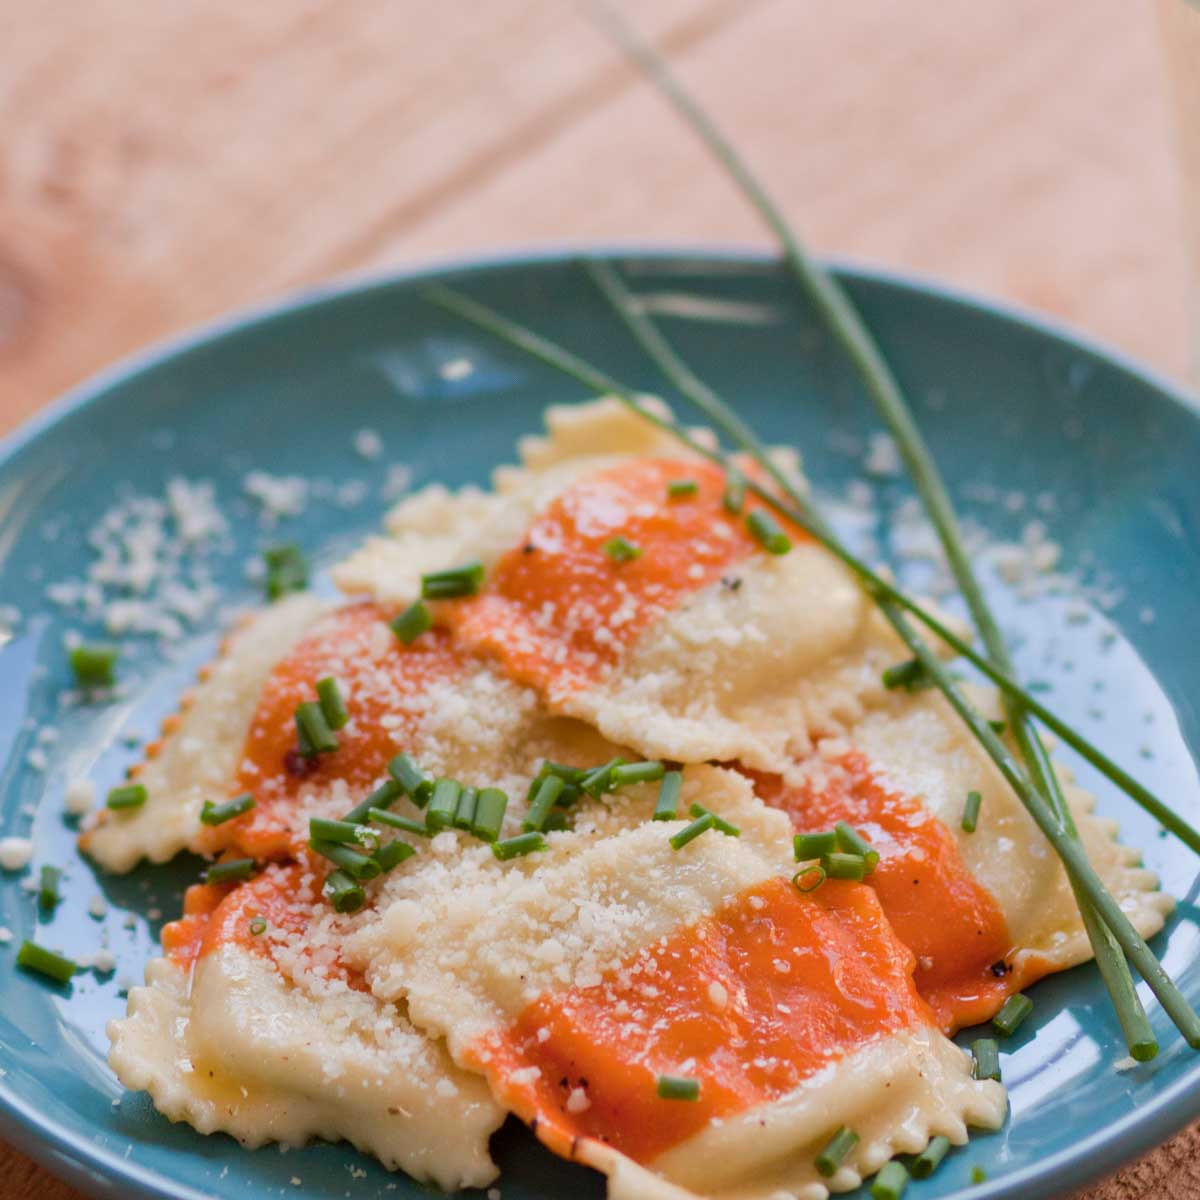 Striped ravioli are coated in a lemon butter sauce and sprinkled with minced fresh chives.